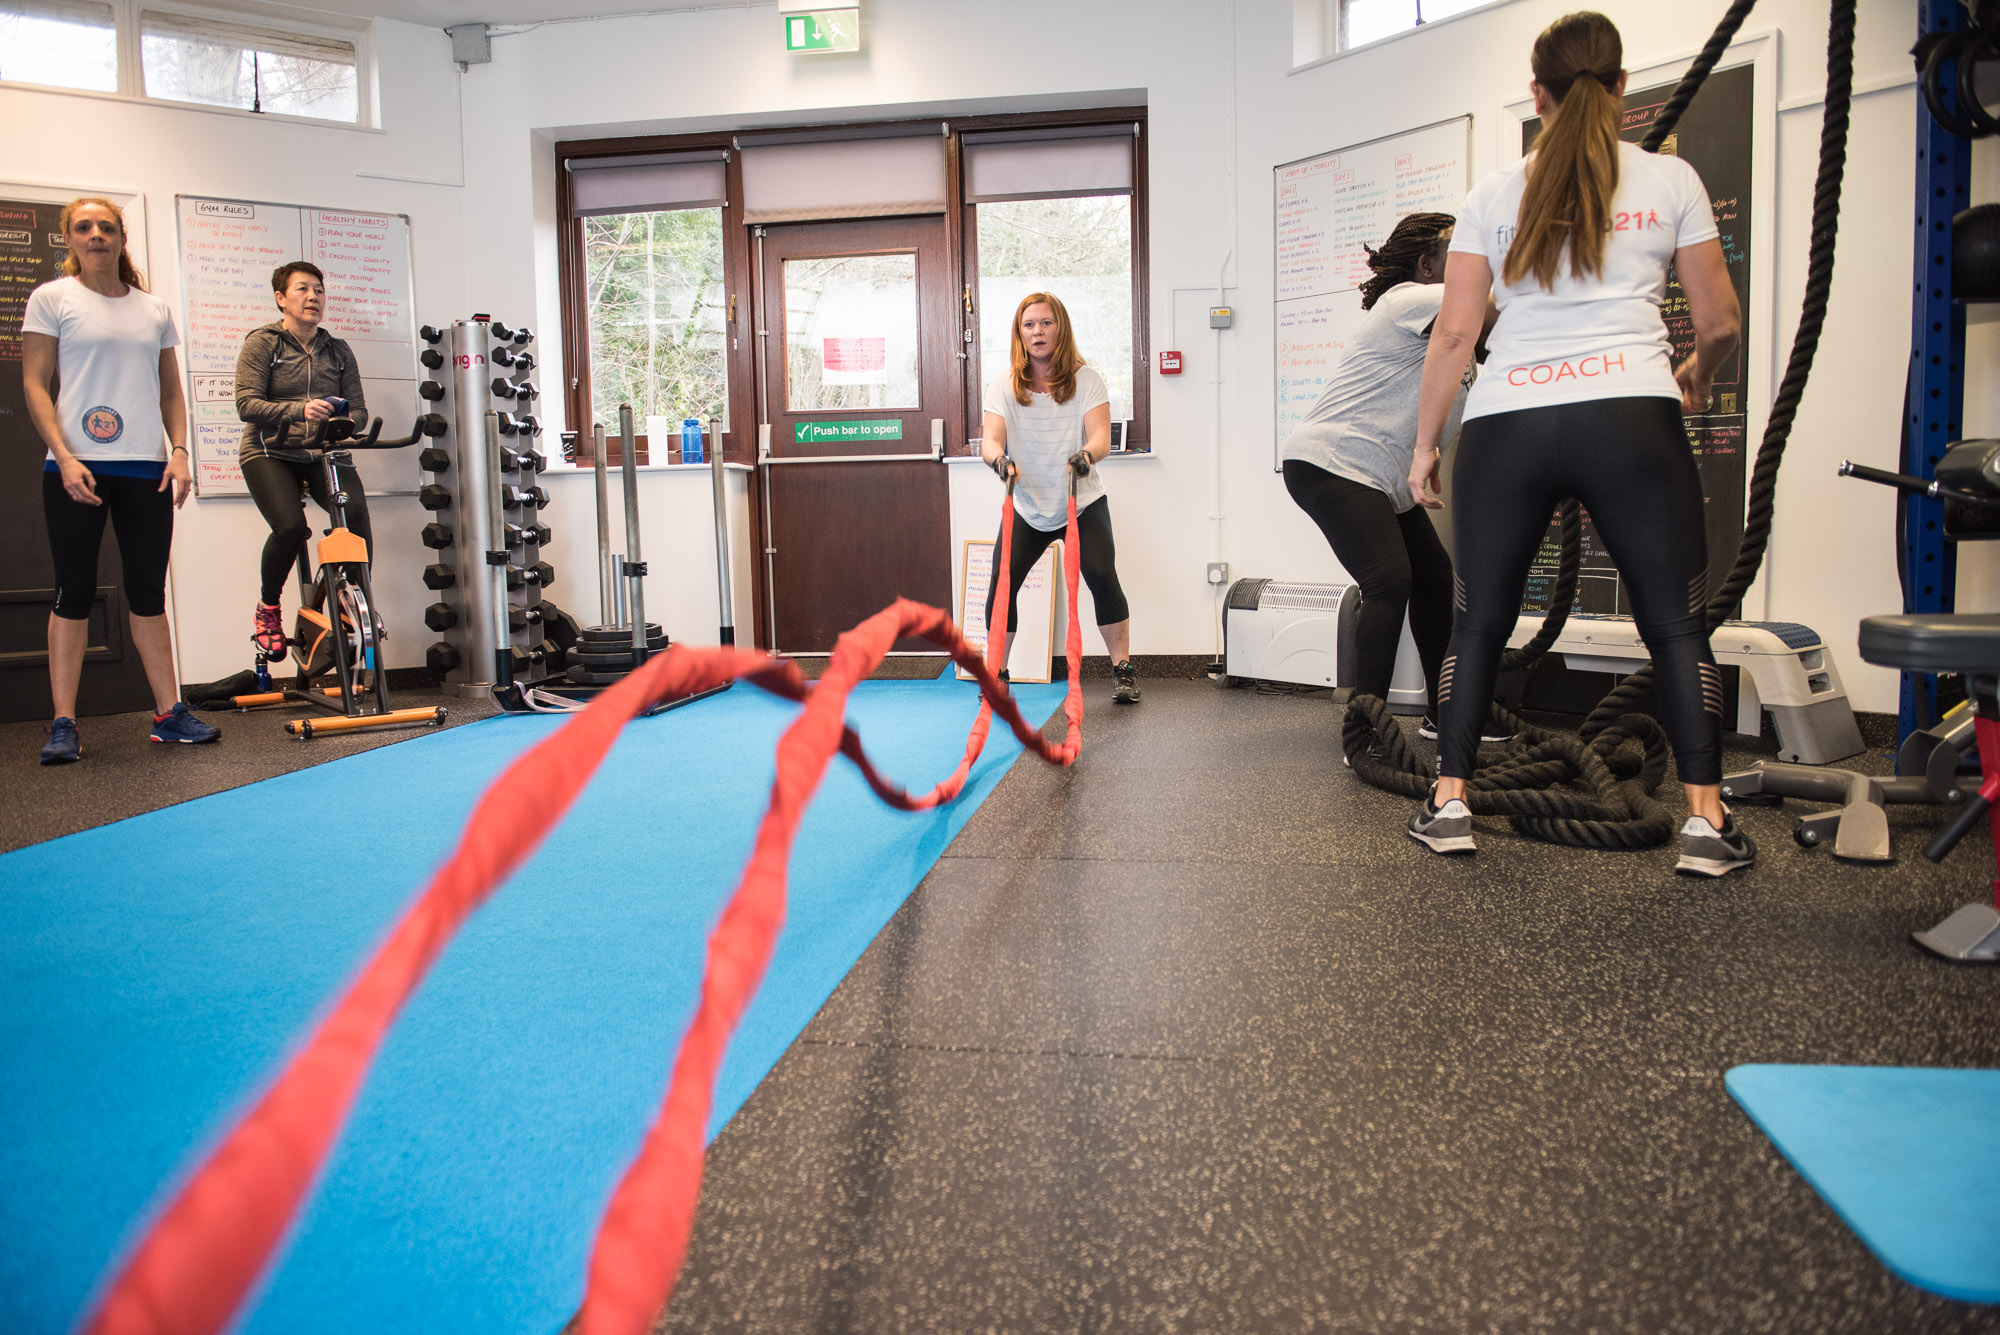 personal training, Winchmore hill, lose weight, fat loss, exercises